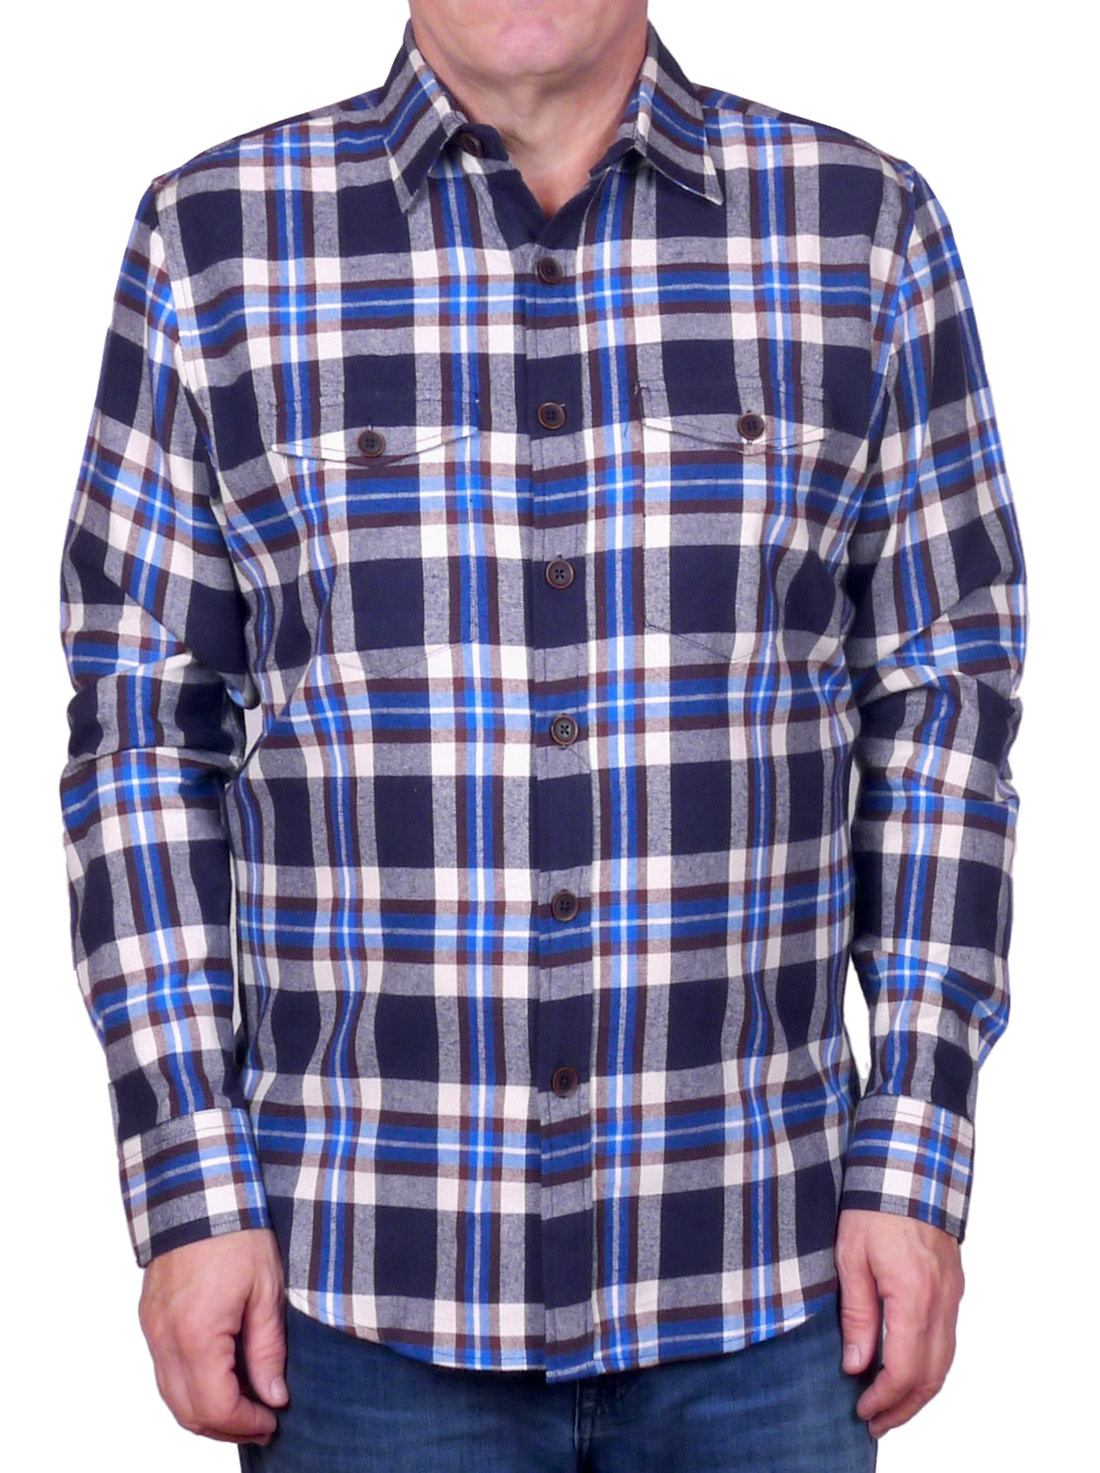 Image of Long Sleeve Flannel - FLG